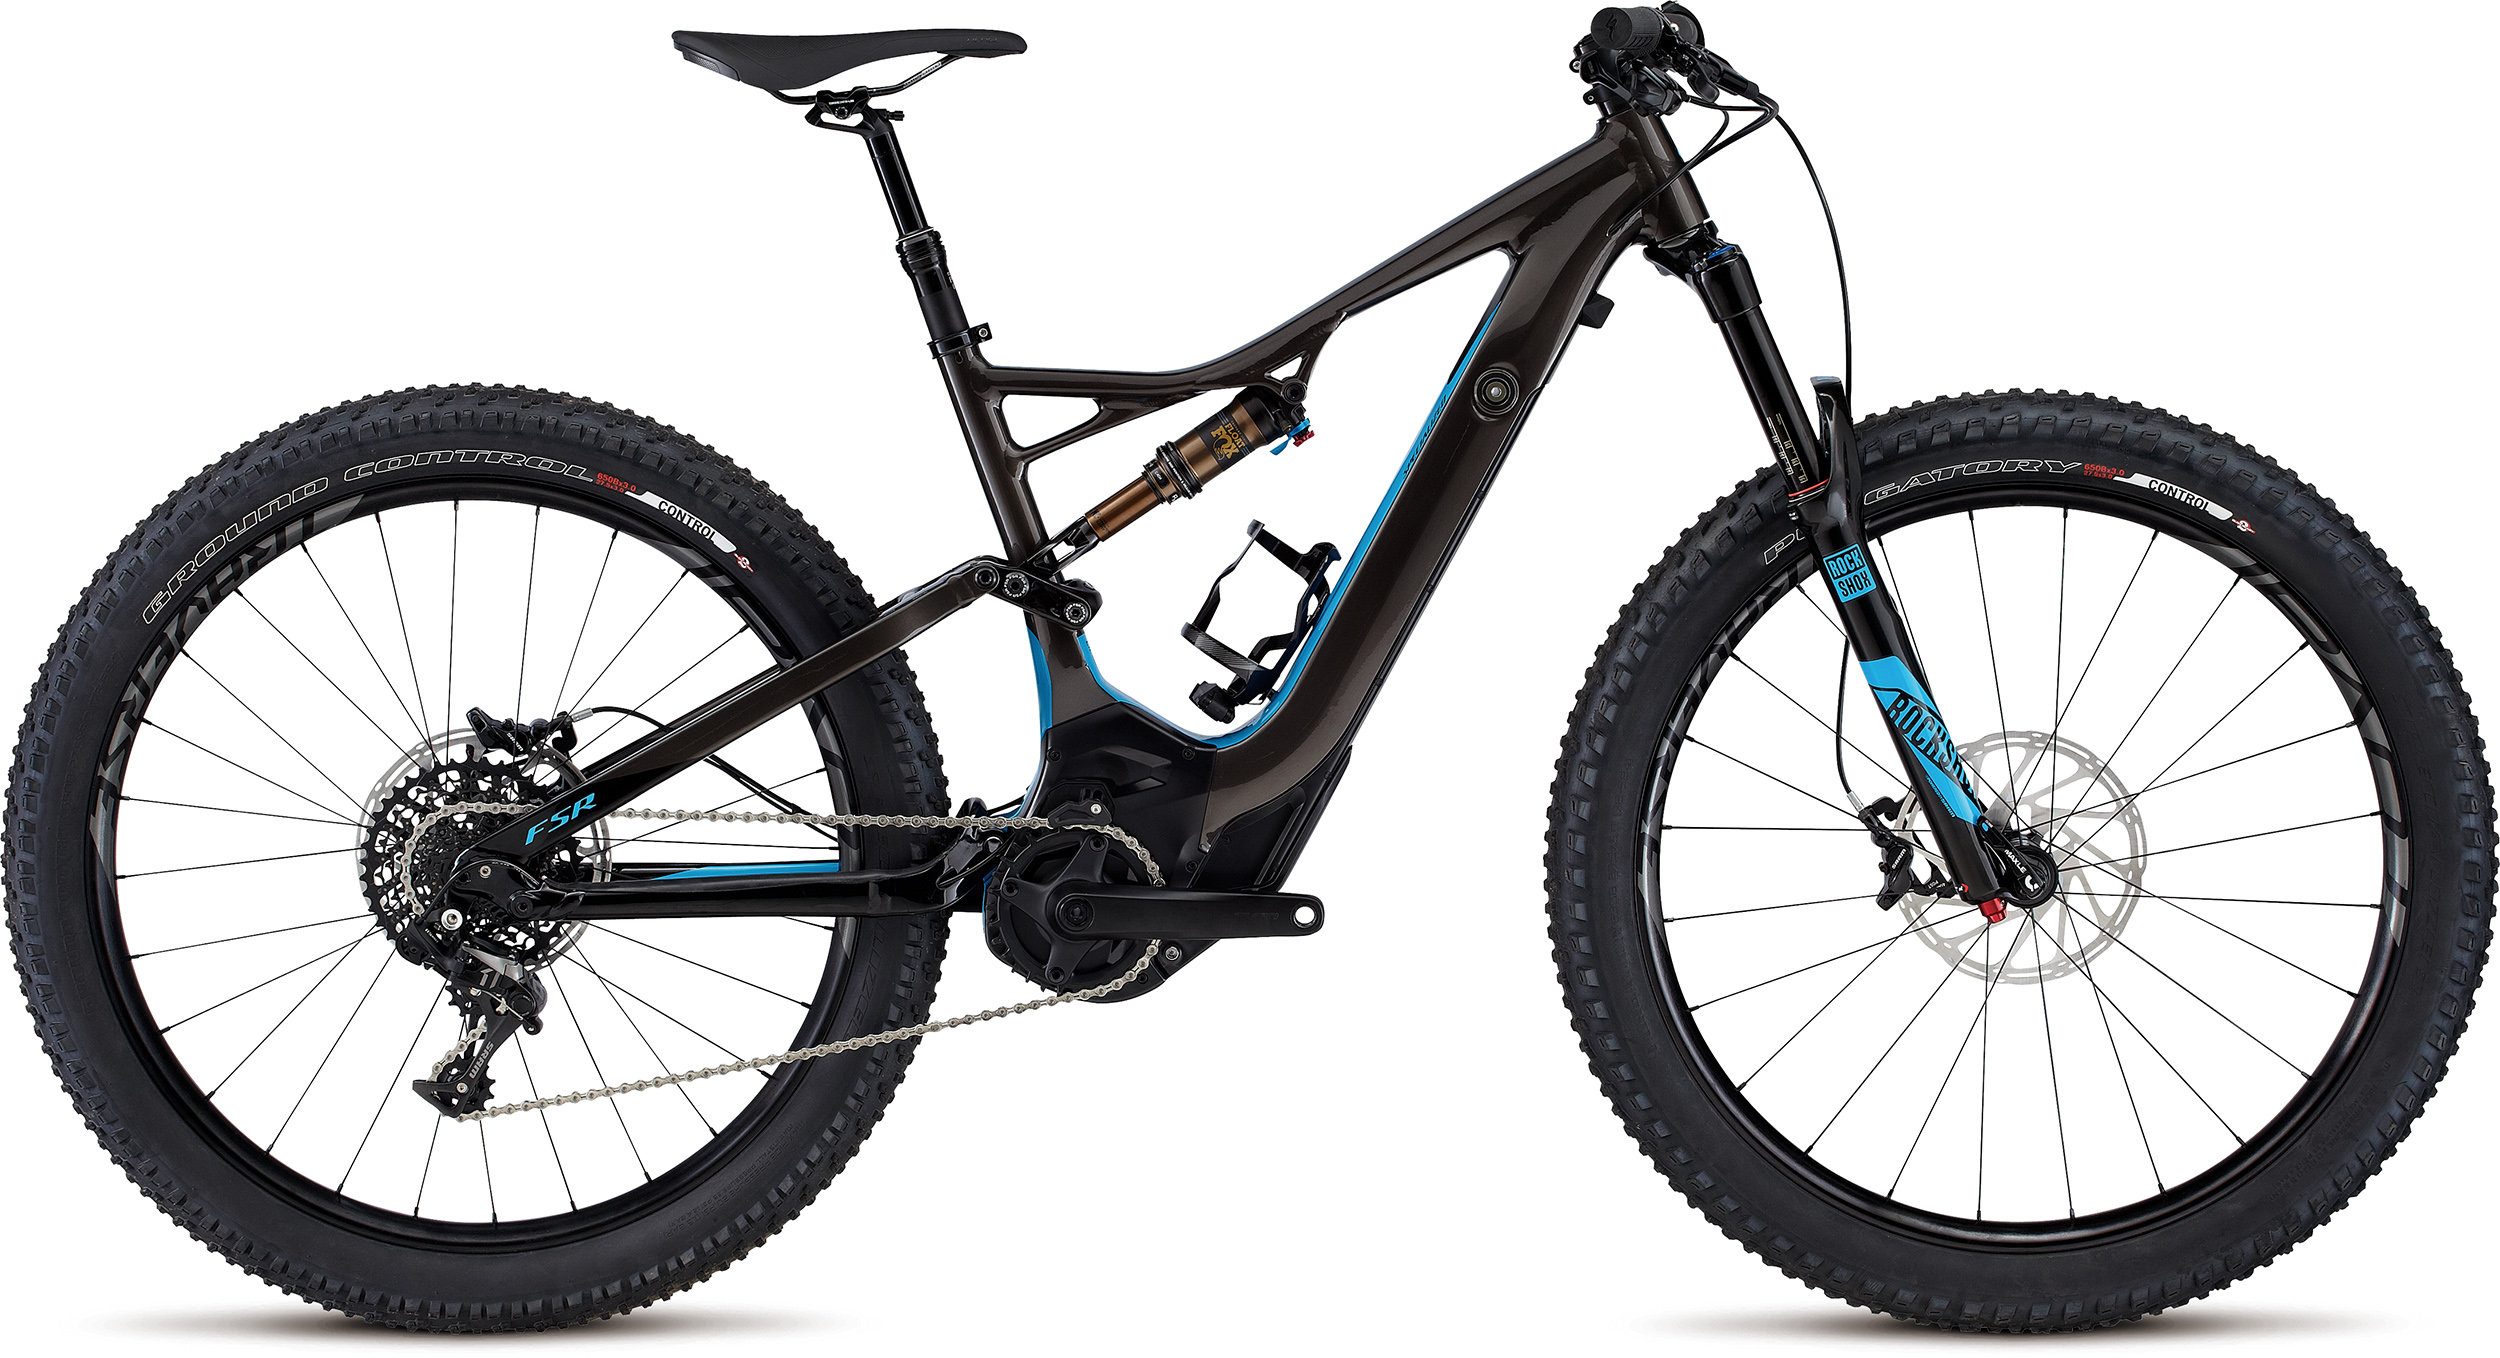 SPECIALIZED LEVO FSR EXPERT 6FATTIE CE WRMCHAR/CYN L - Bike Zone